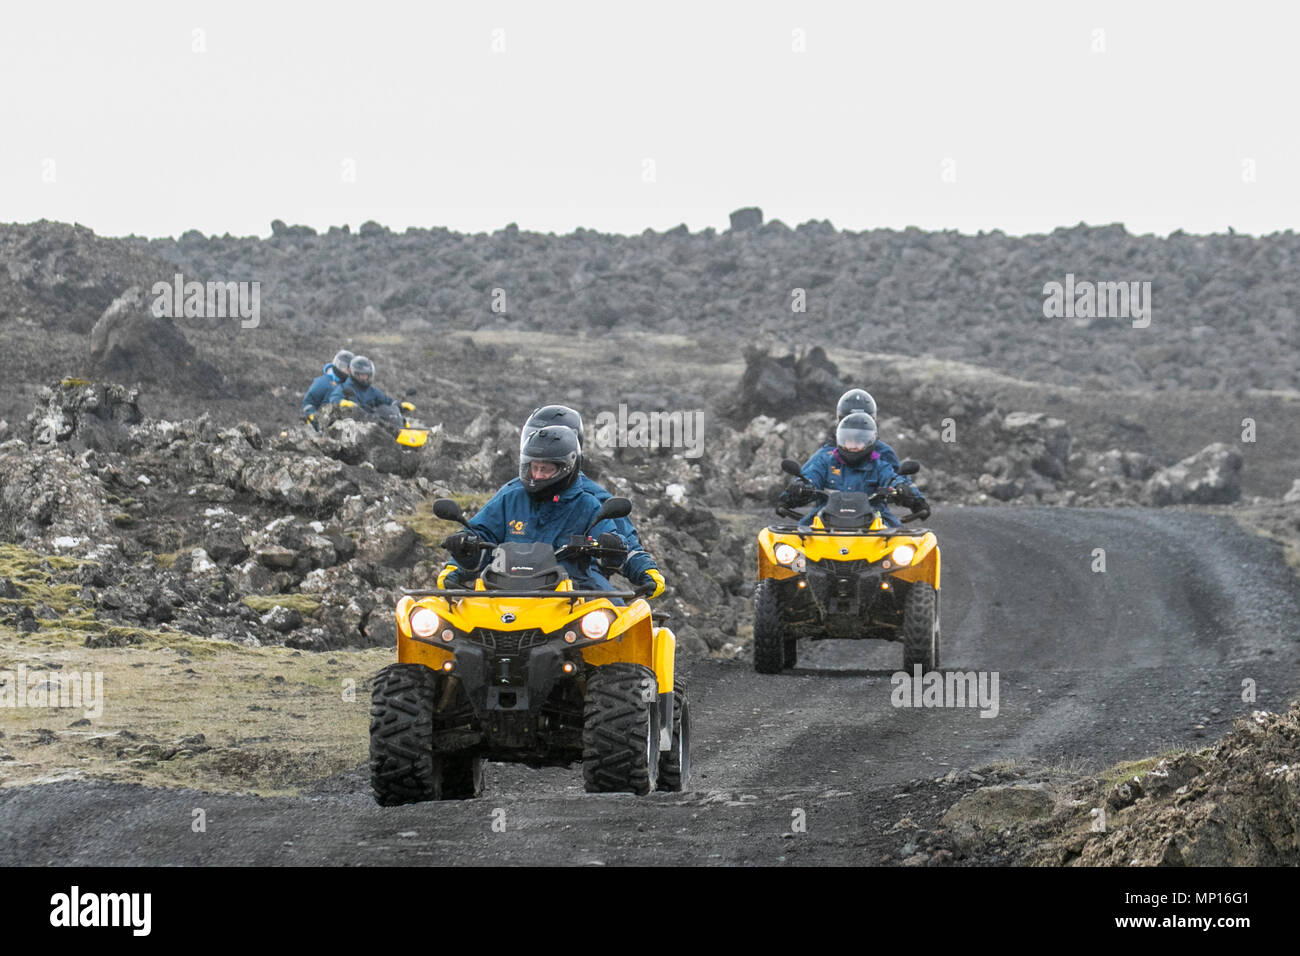 BRP outlander ATVS quads, atv, quad, bike, sport, vehicle, extreme, adventure, race, speed, road, dirt, wheel, motocross, terrain, motor, outdoor, riding, transportation, offroad, competition, motorcycle, power, rider, transport, fun, helmet, active, 4x4, motorbike, mud, man, action, off-road, sand, sports, leisure, trail, dangerous, driving, desert, track, racer, drive, ride, off road use on training run at Grindavik, Iceland, UK - Stock Image